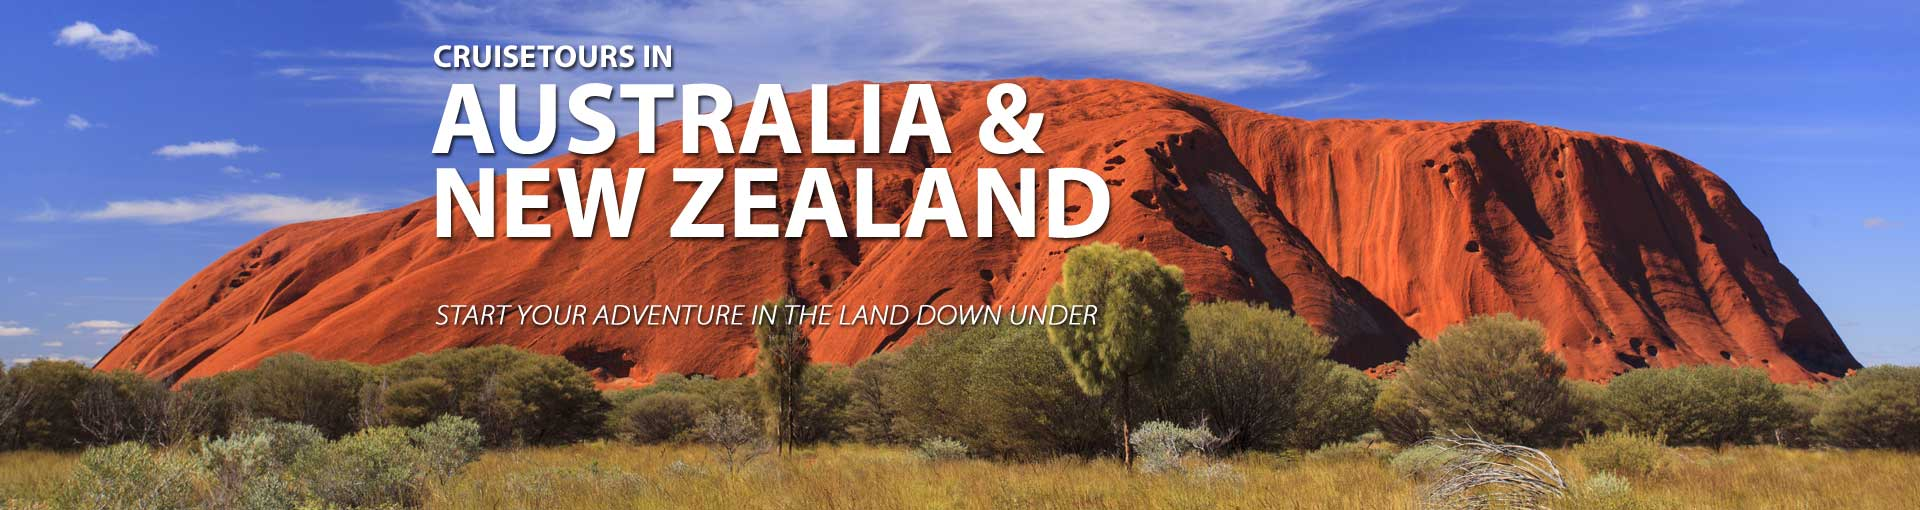 Australia/New Zealand Cruisetours